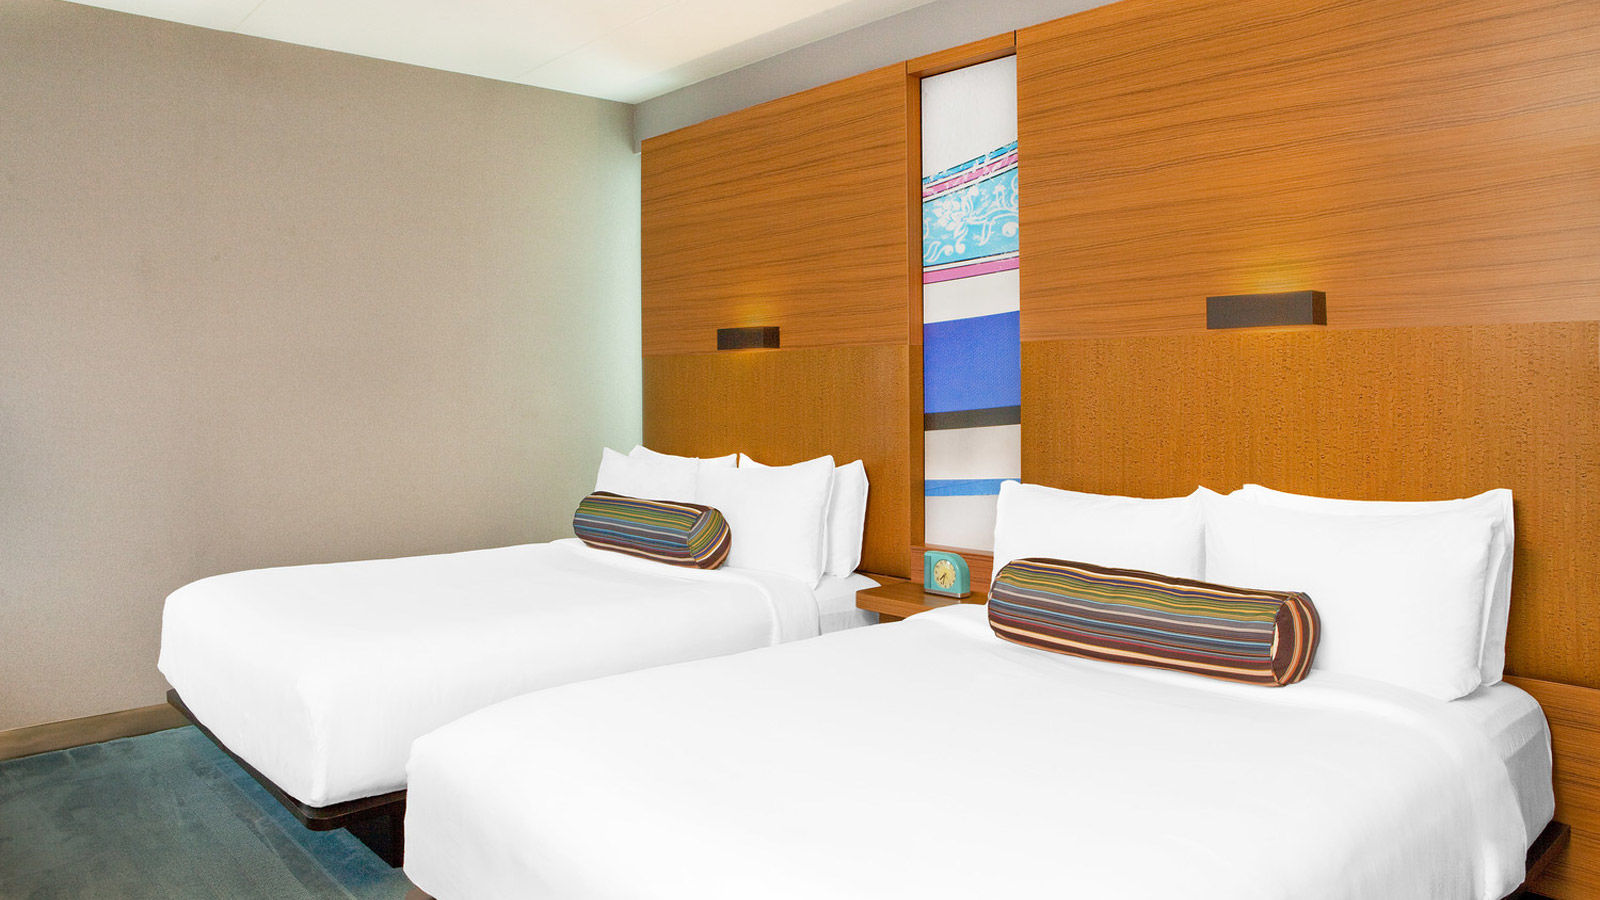 Doral Accommodations - Aloft Queen Room